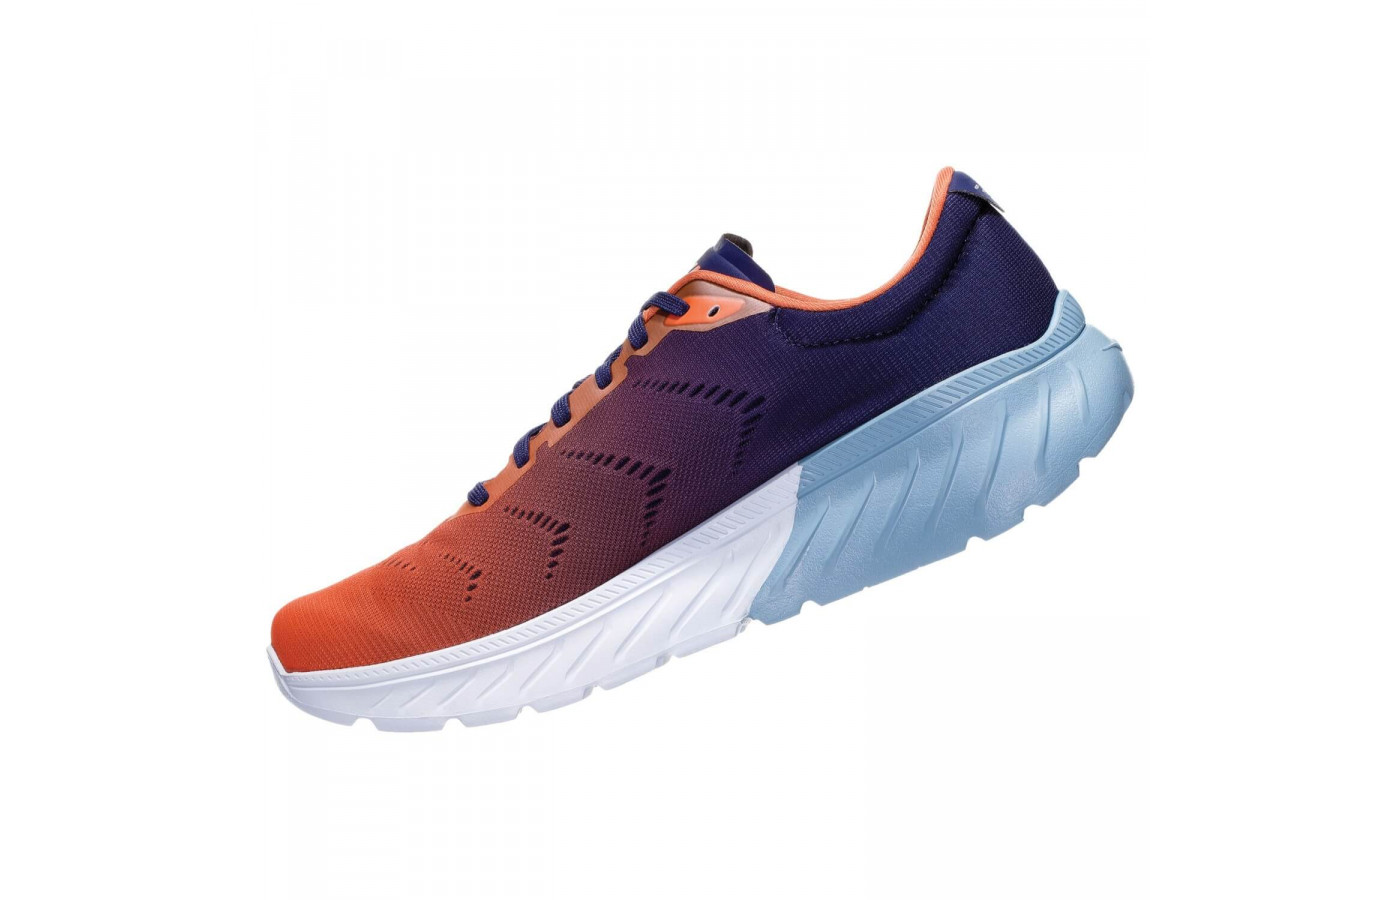 Hoka One One Mach 2 other side